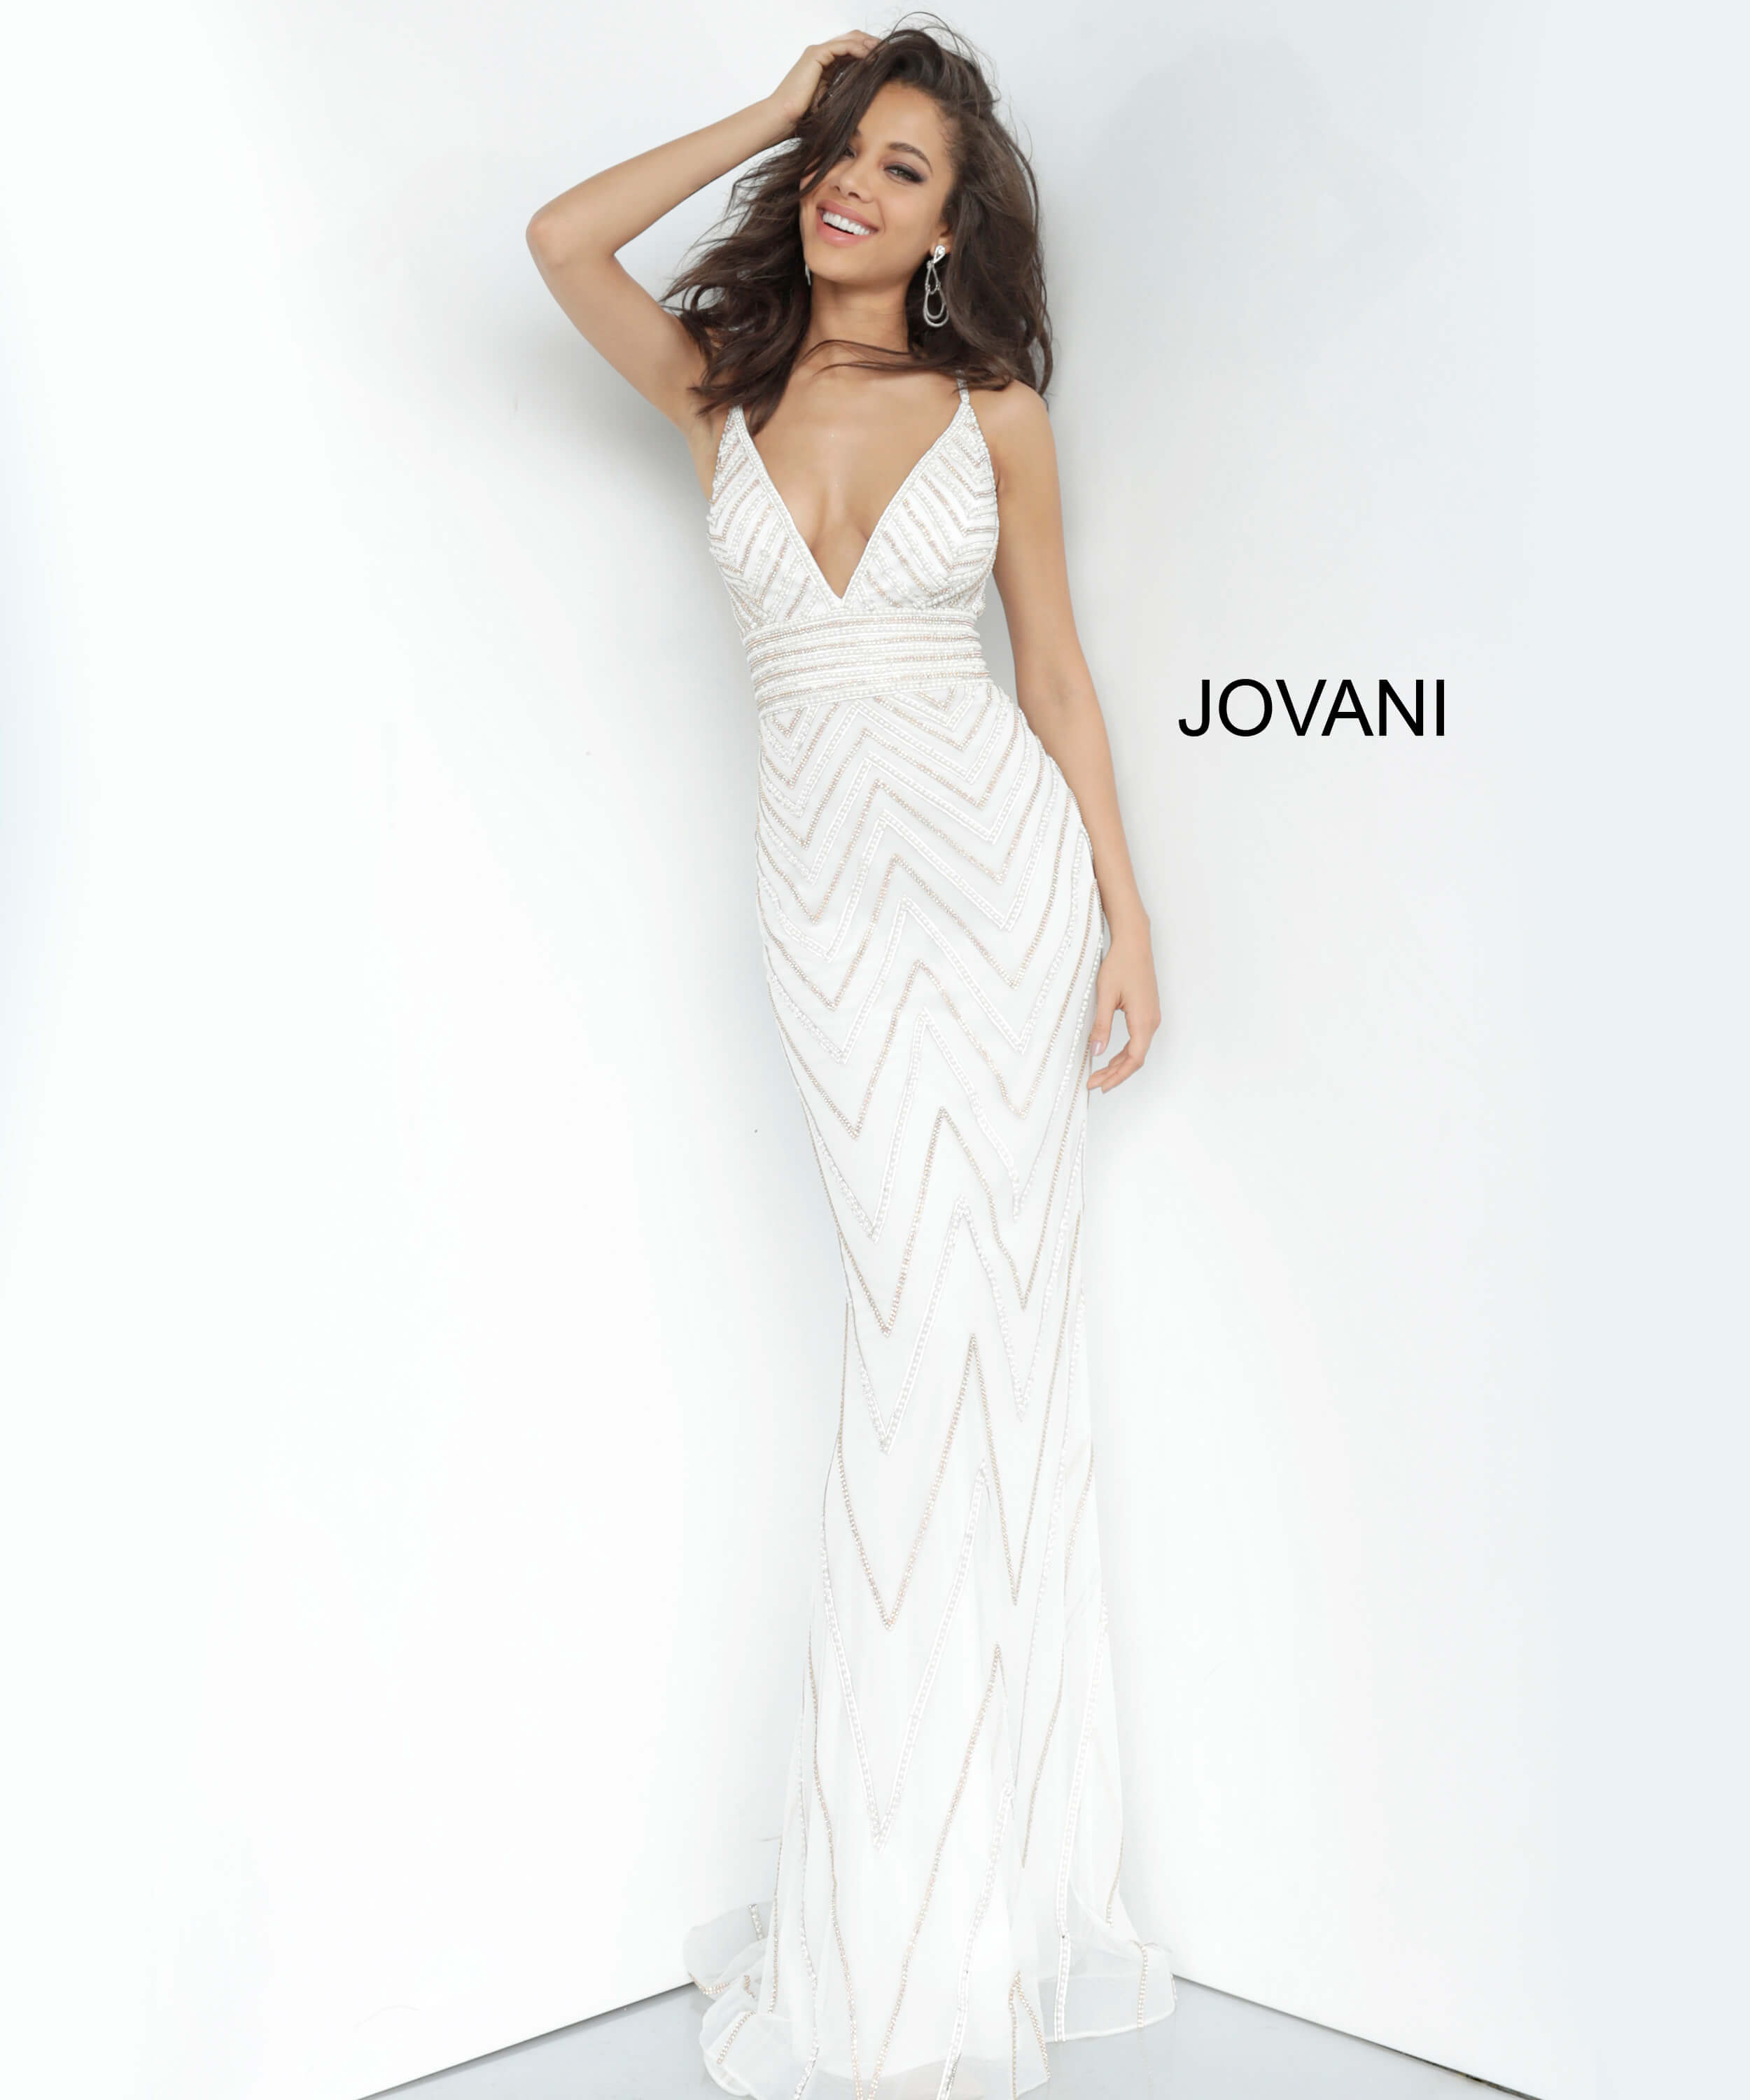 jovani Jovani 2267 Beaded V Neck Prom Dress on mobile 1